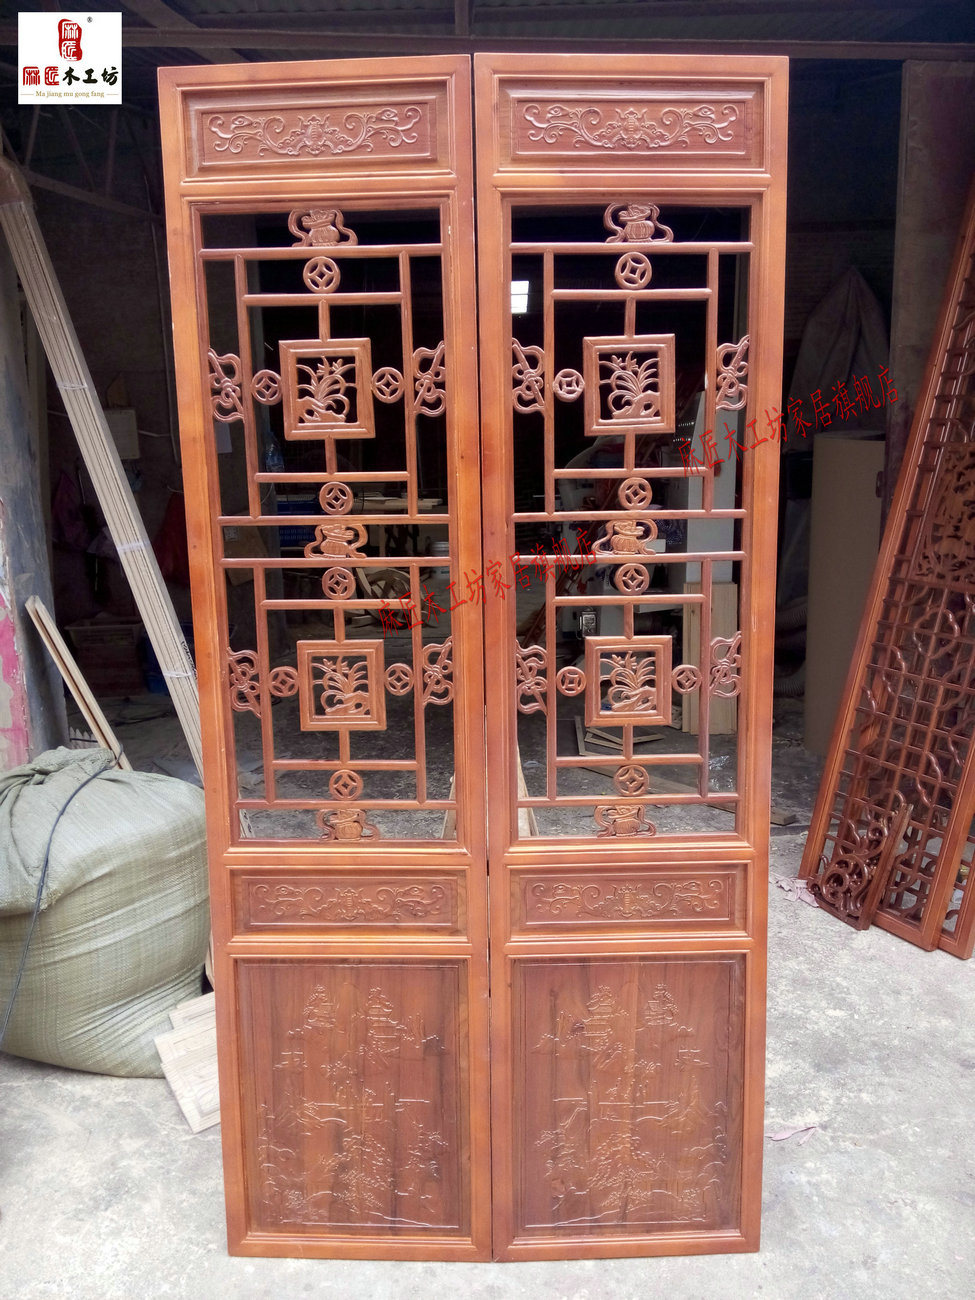 Buy Dongyang wood carving chinese antique wood doors dongyang wood carving antique  doors and windows off screen porch lattice in Cheap Price on m.alibaba. ... - Buy Dongyang Wood Carving Chinese Antique Wood Doors Dongyang Wood